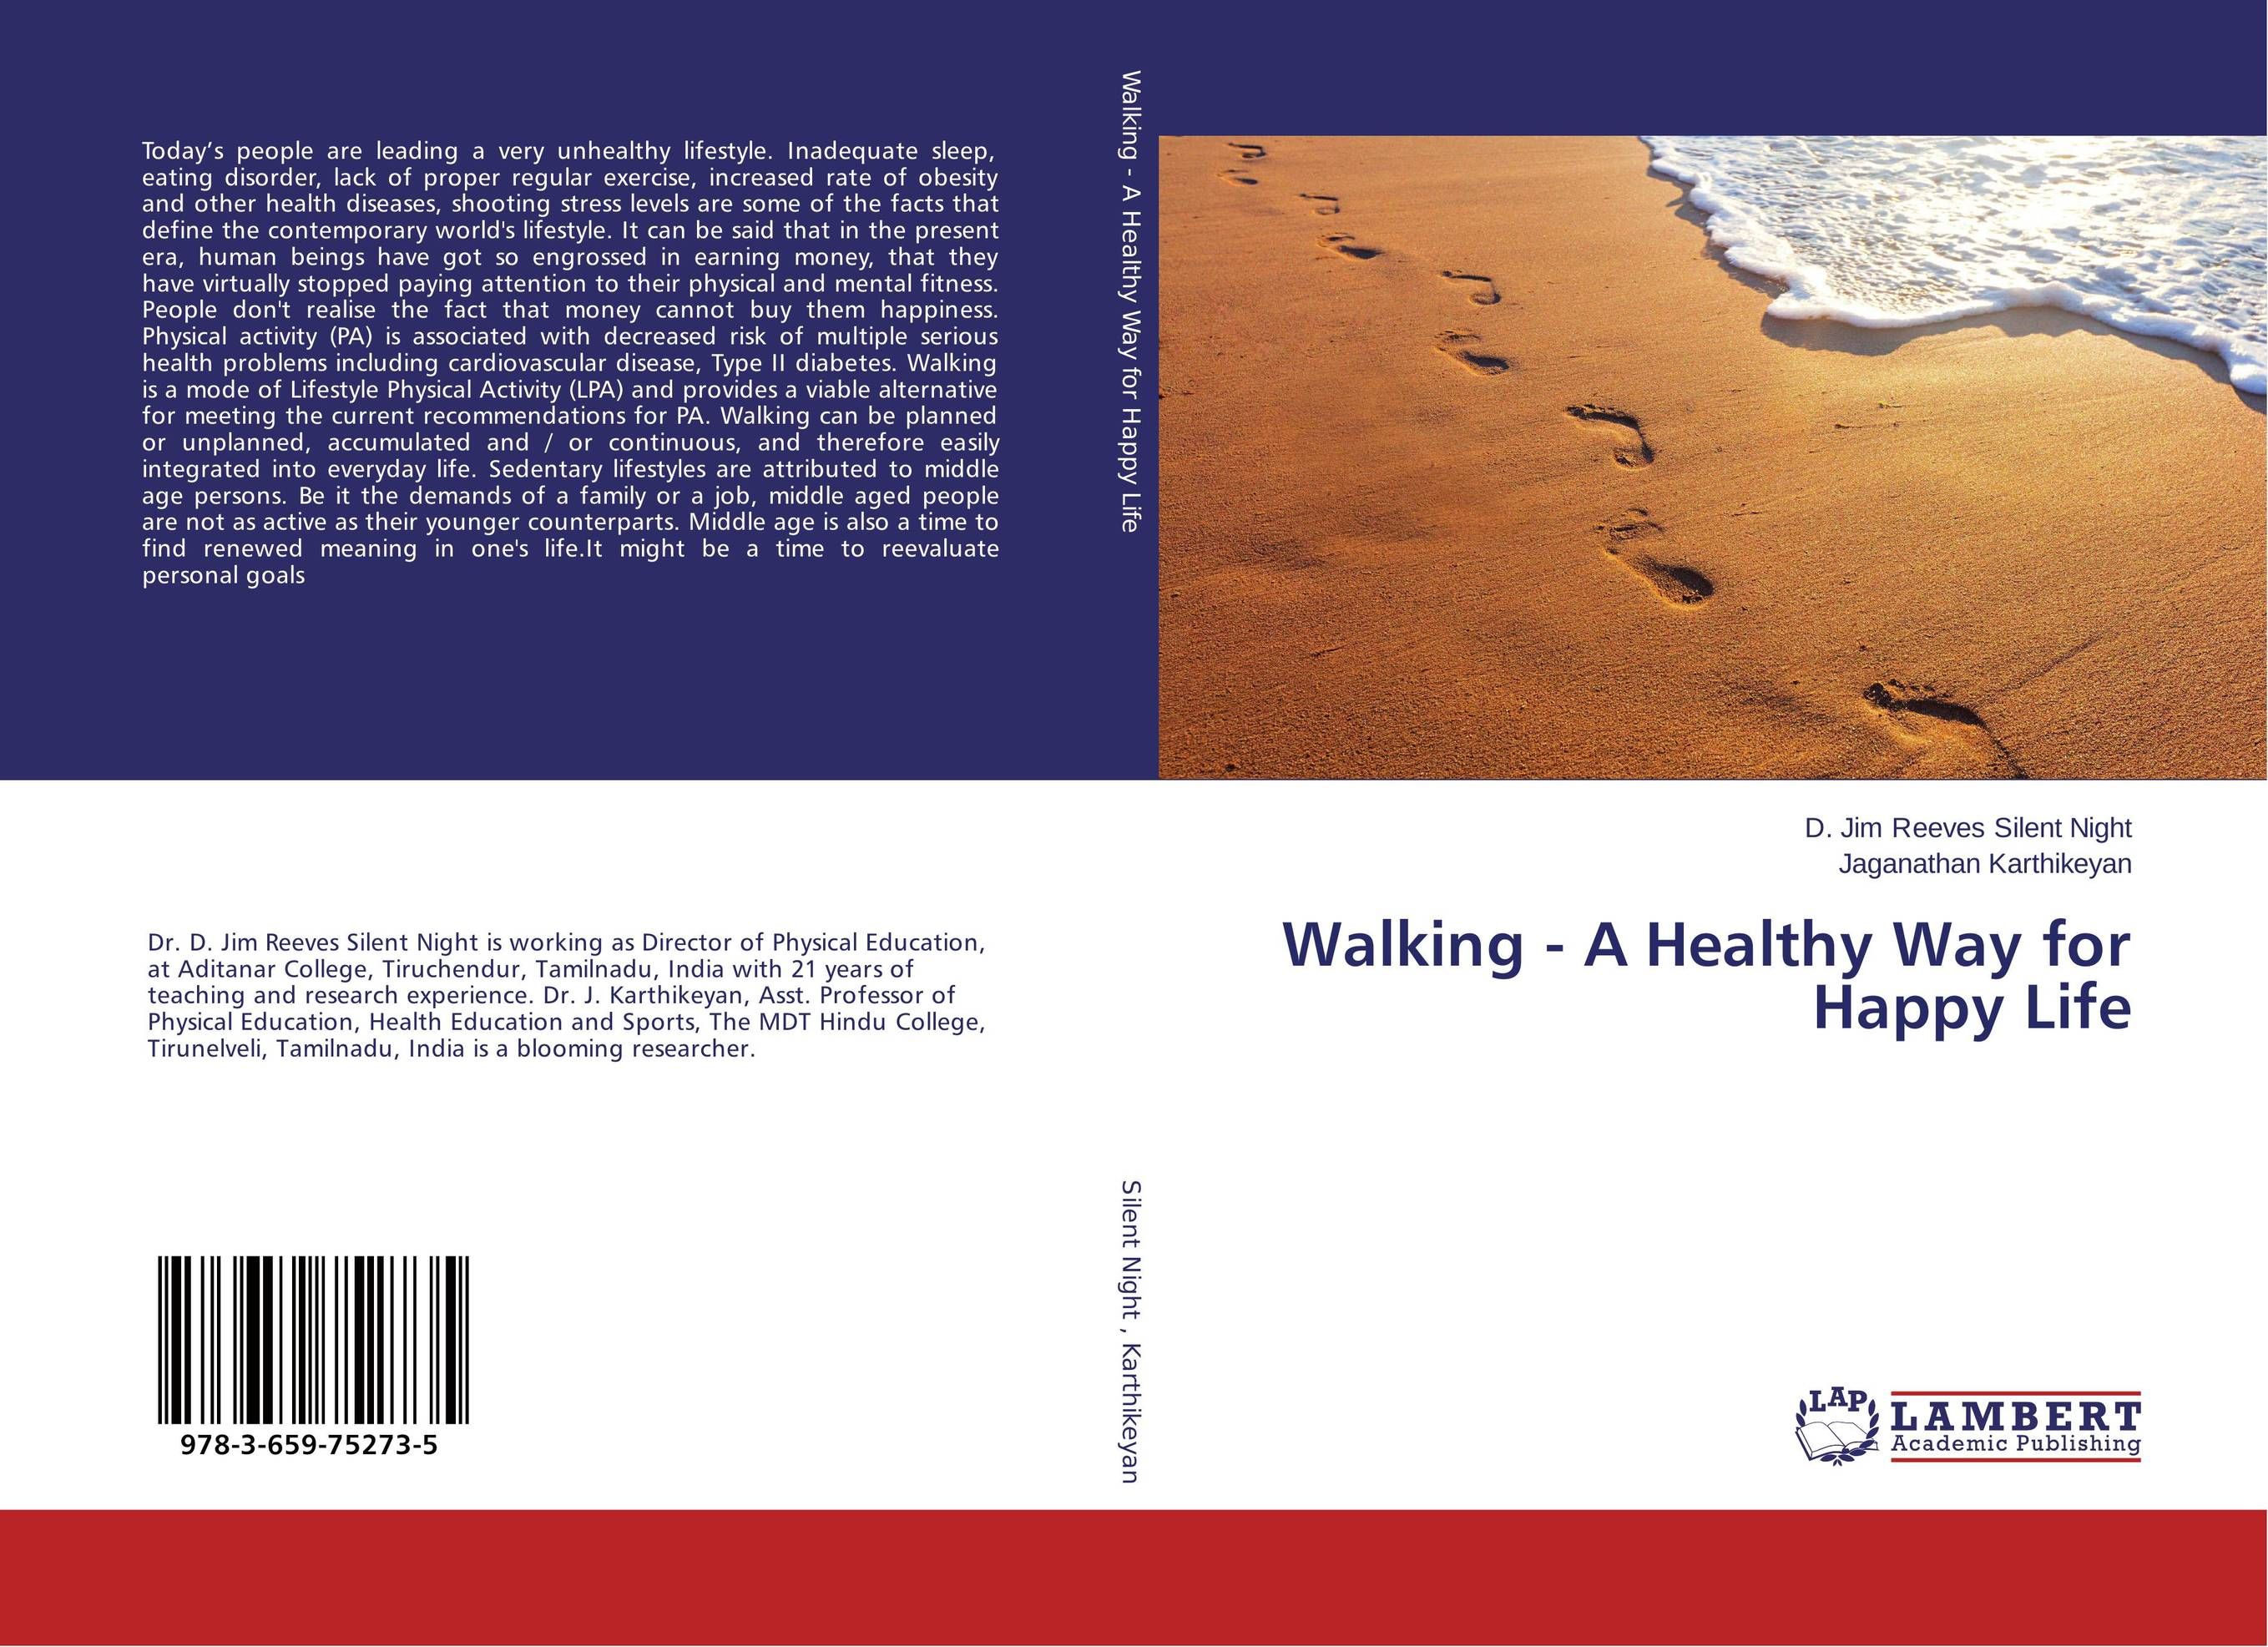 Walking - A Healthy Way for Happy Life 100 ways to be happy in life